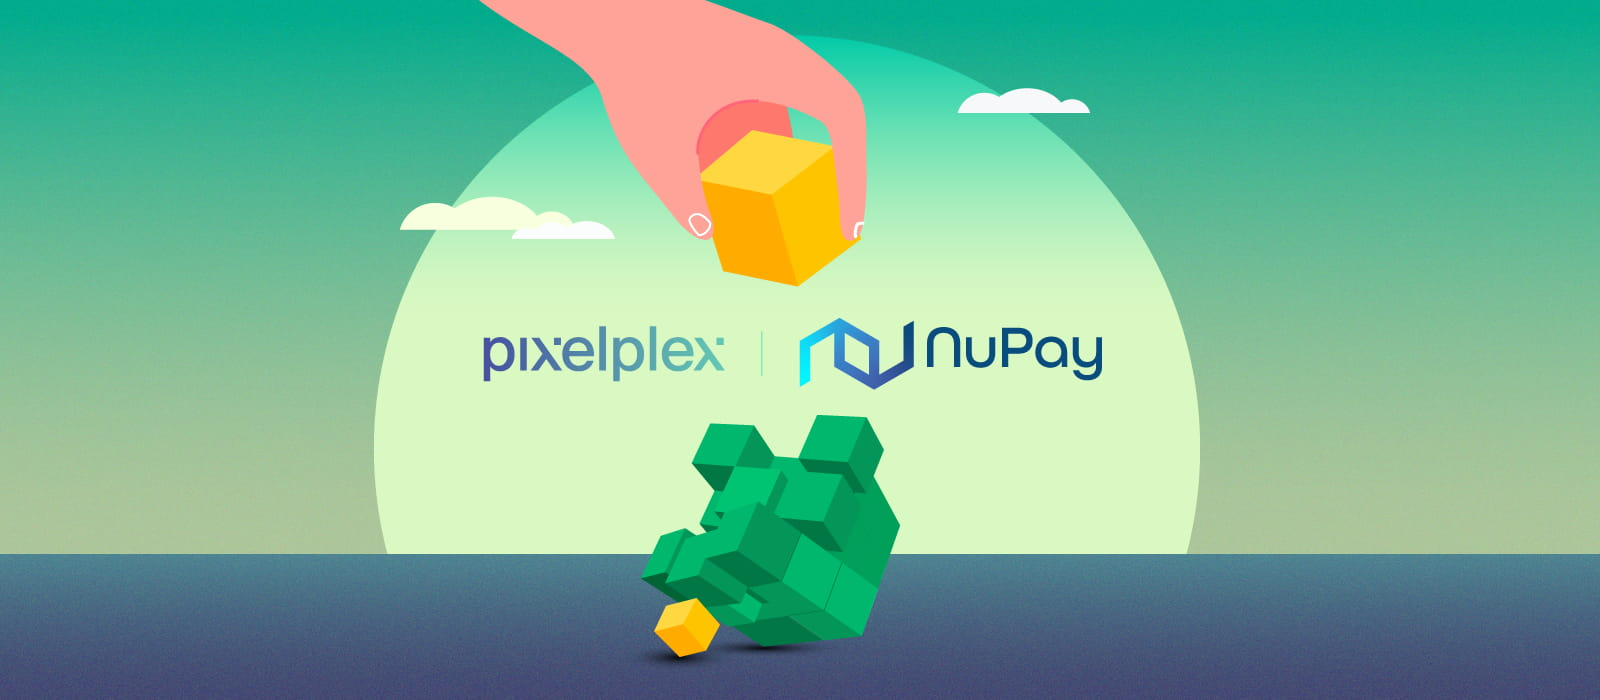 A hand building a cube out of green and yellow blocks next to PixelPlex and NuPay logos